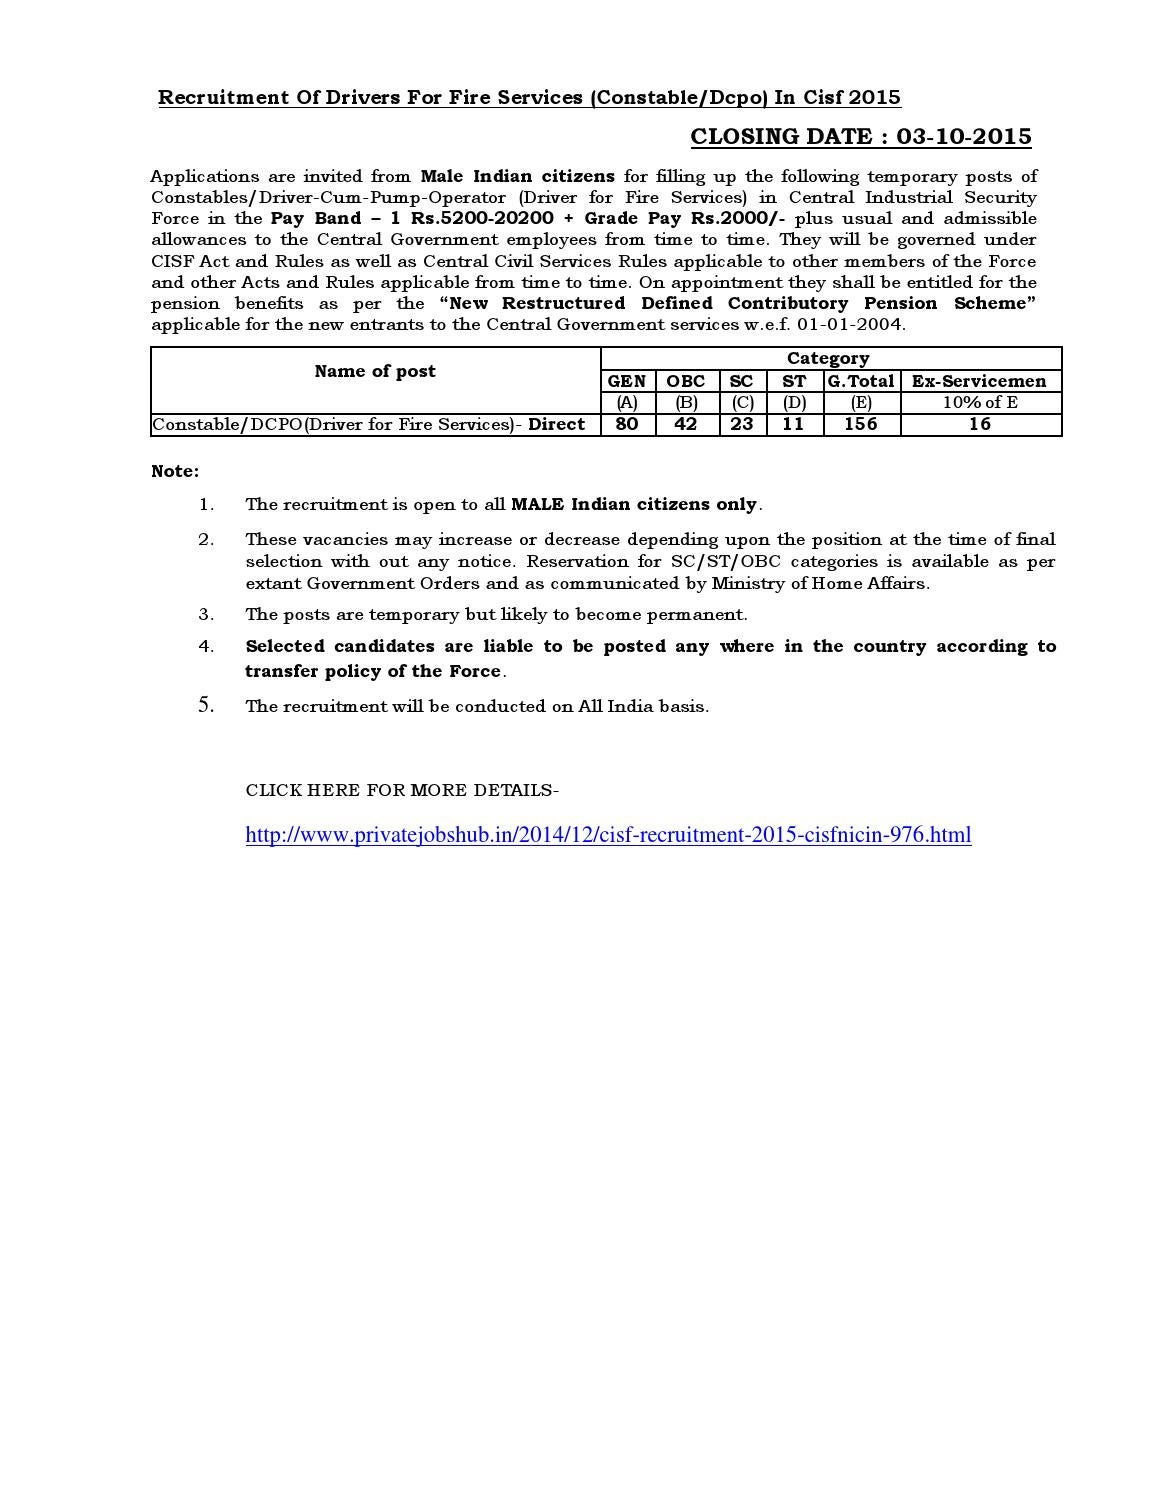 Recruitment Of Drivers For Fire Services (Constable/Dcpo) In Cisf 2015 by  privatejobshub - issuu